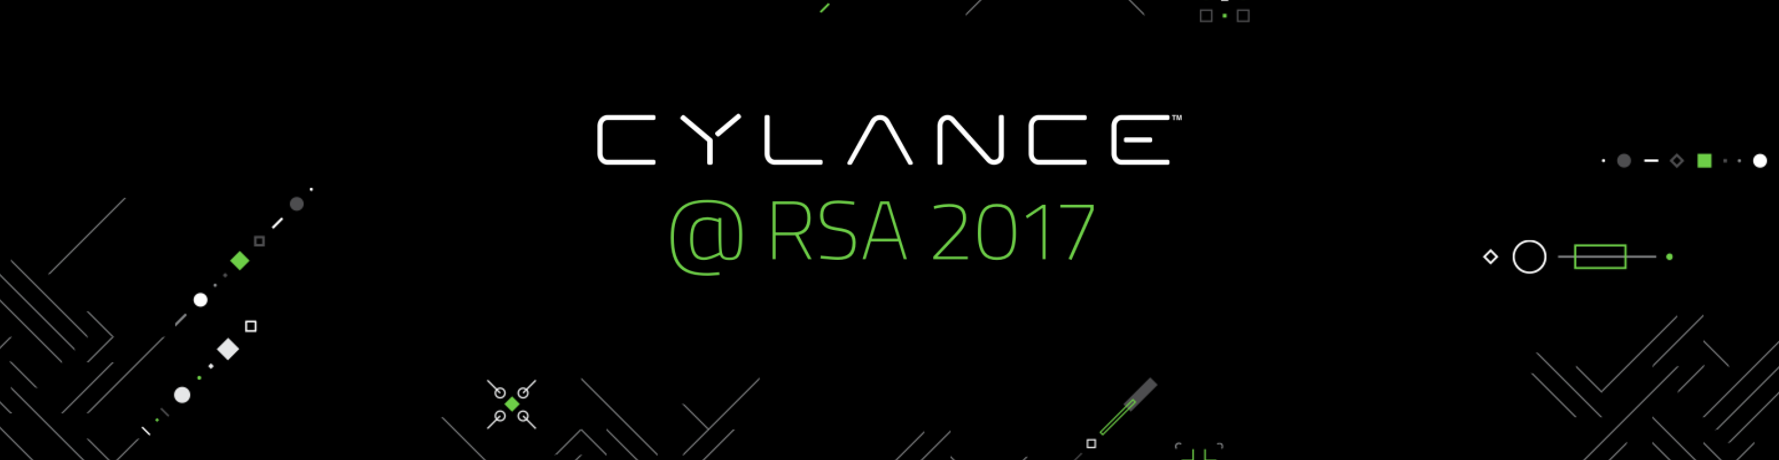 https://pages.cylance.com/rsa-conference-registration-2017-general.html